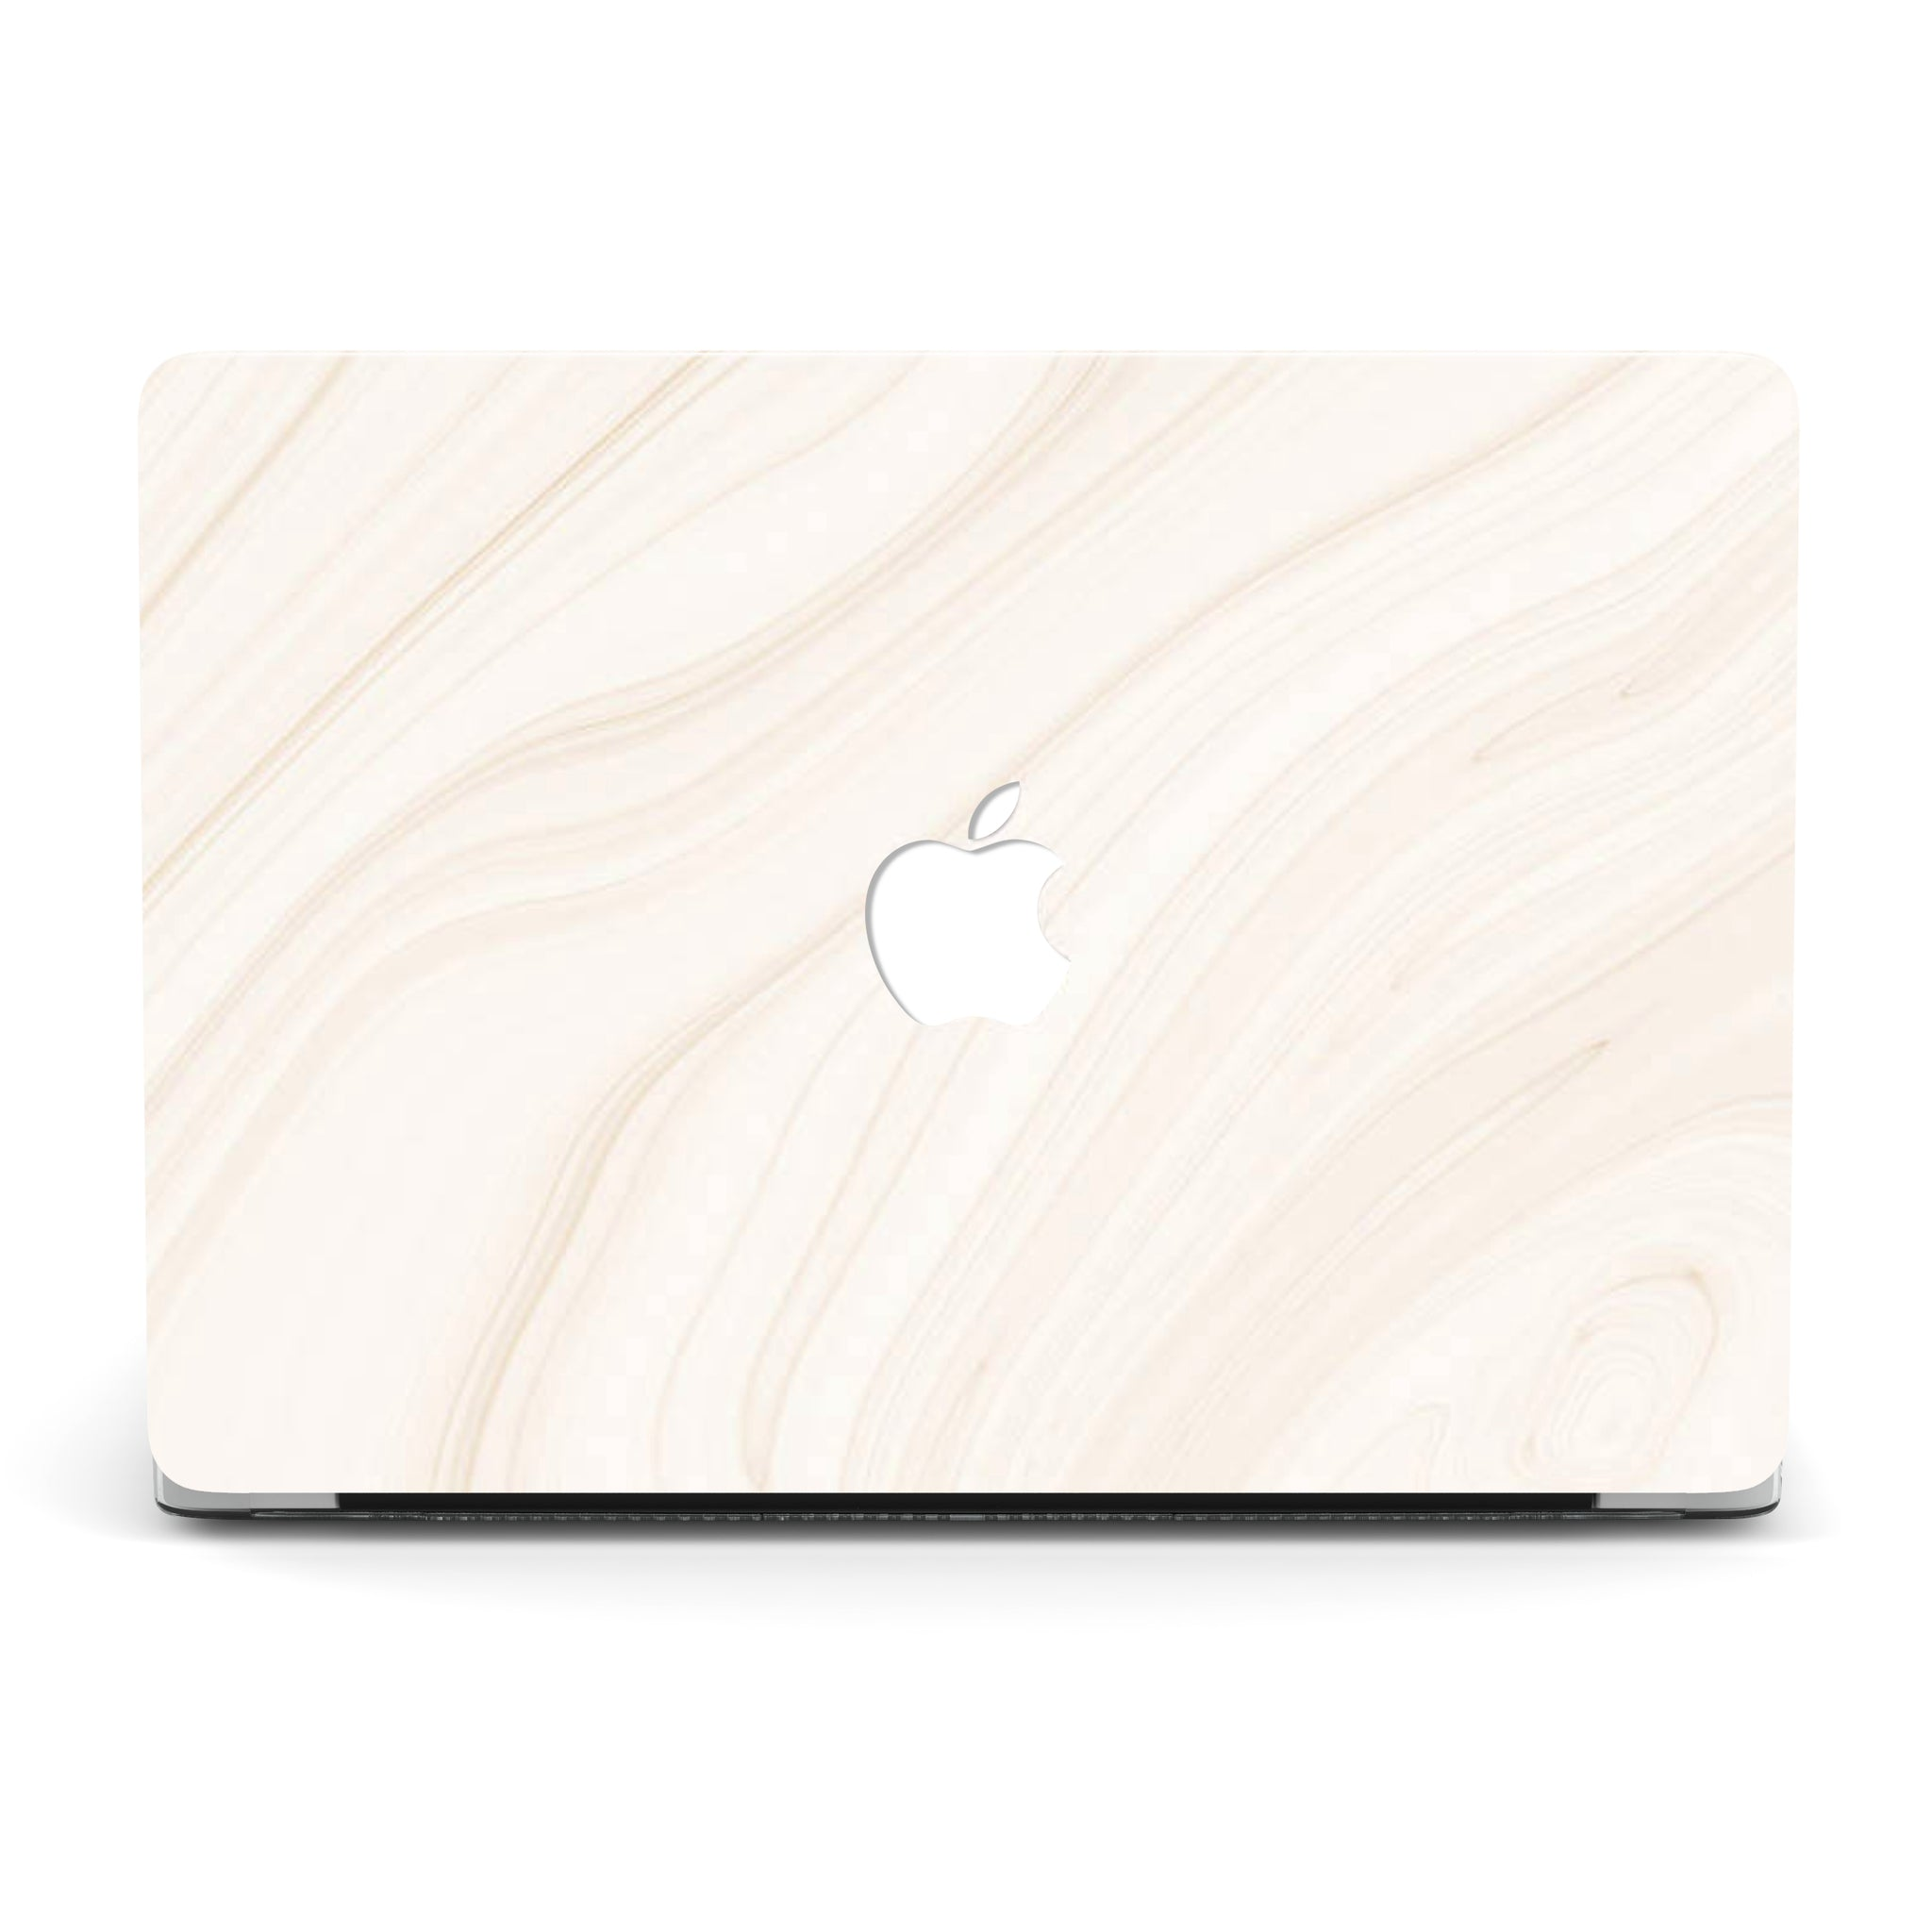 WAVES OF BEIGE MACBOOK CASE